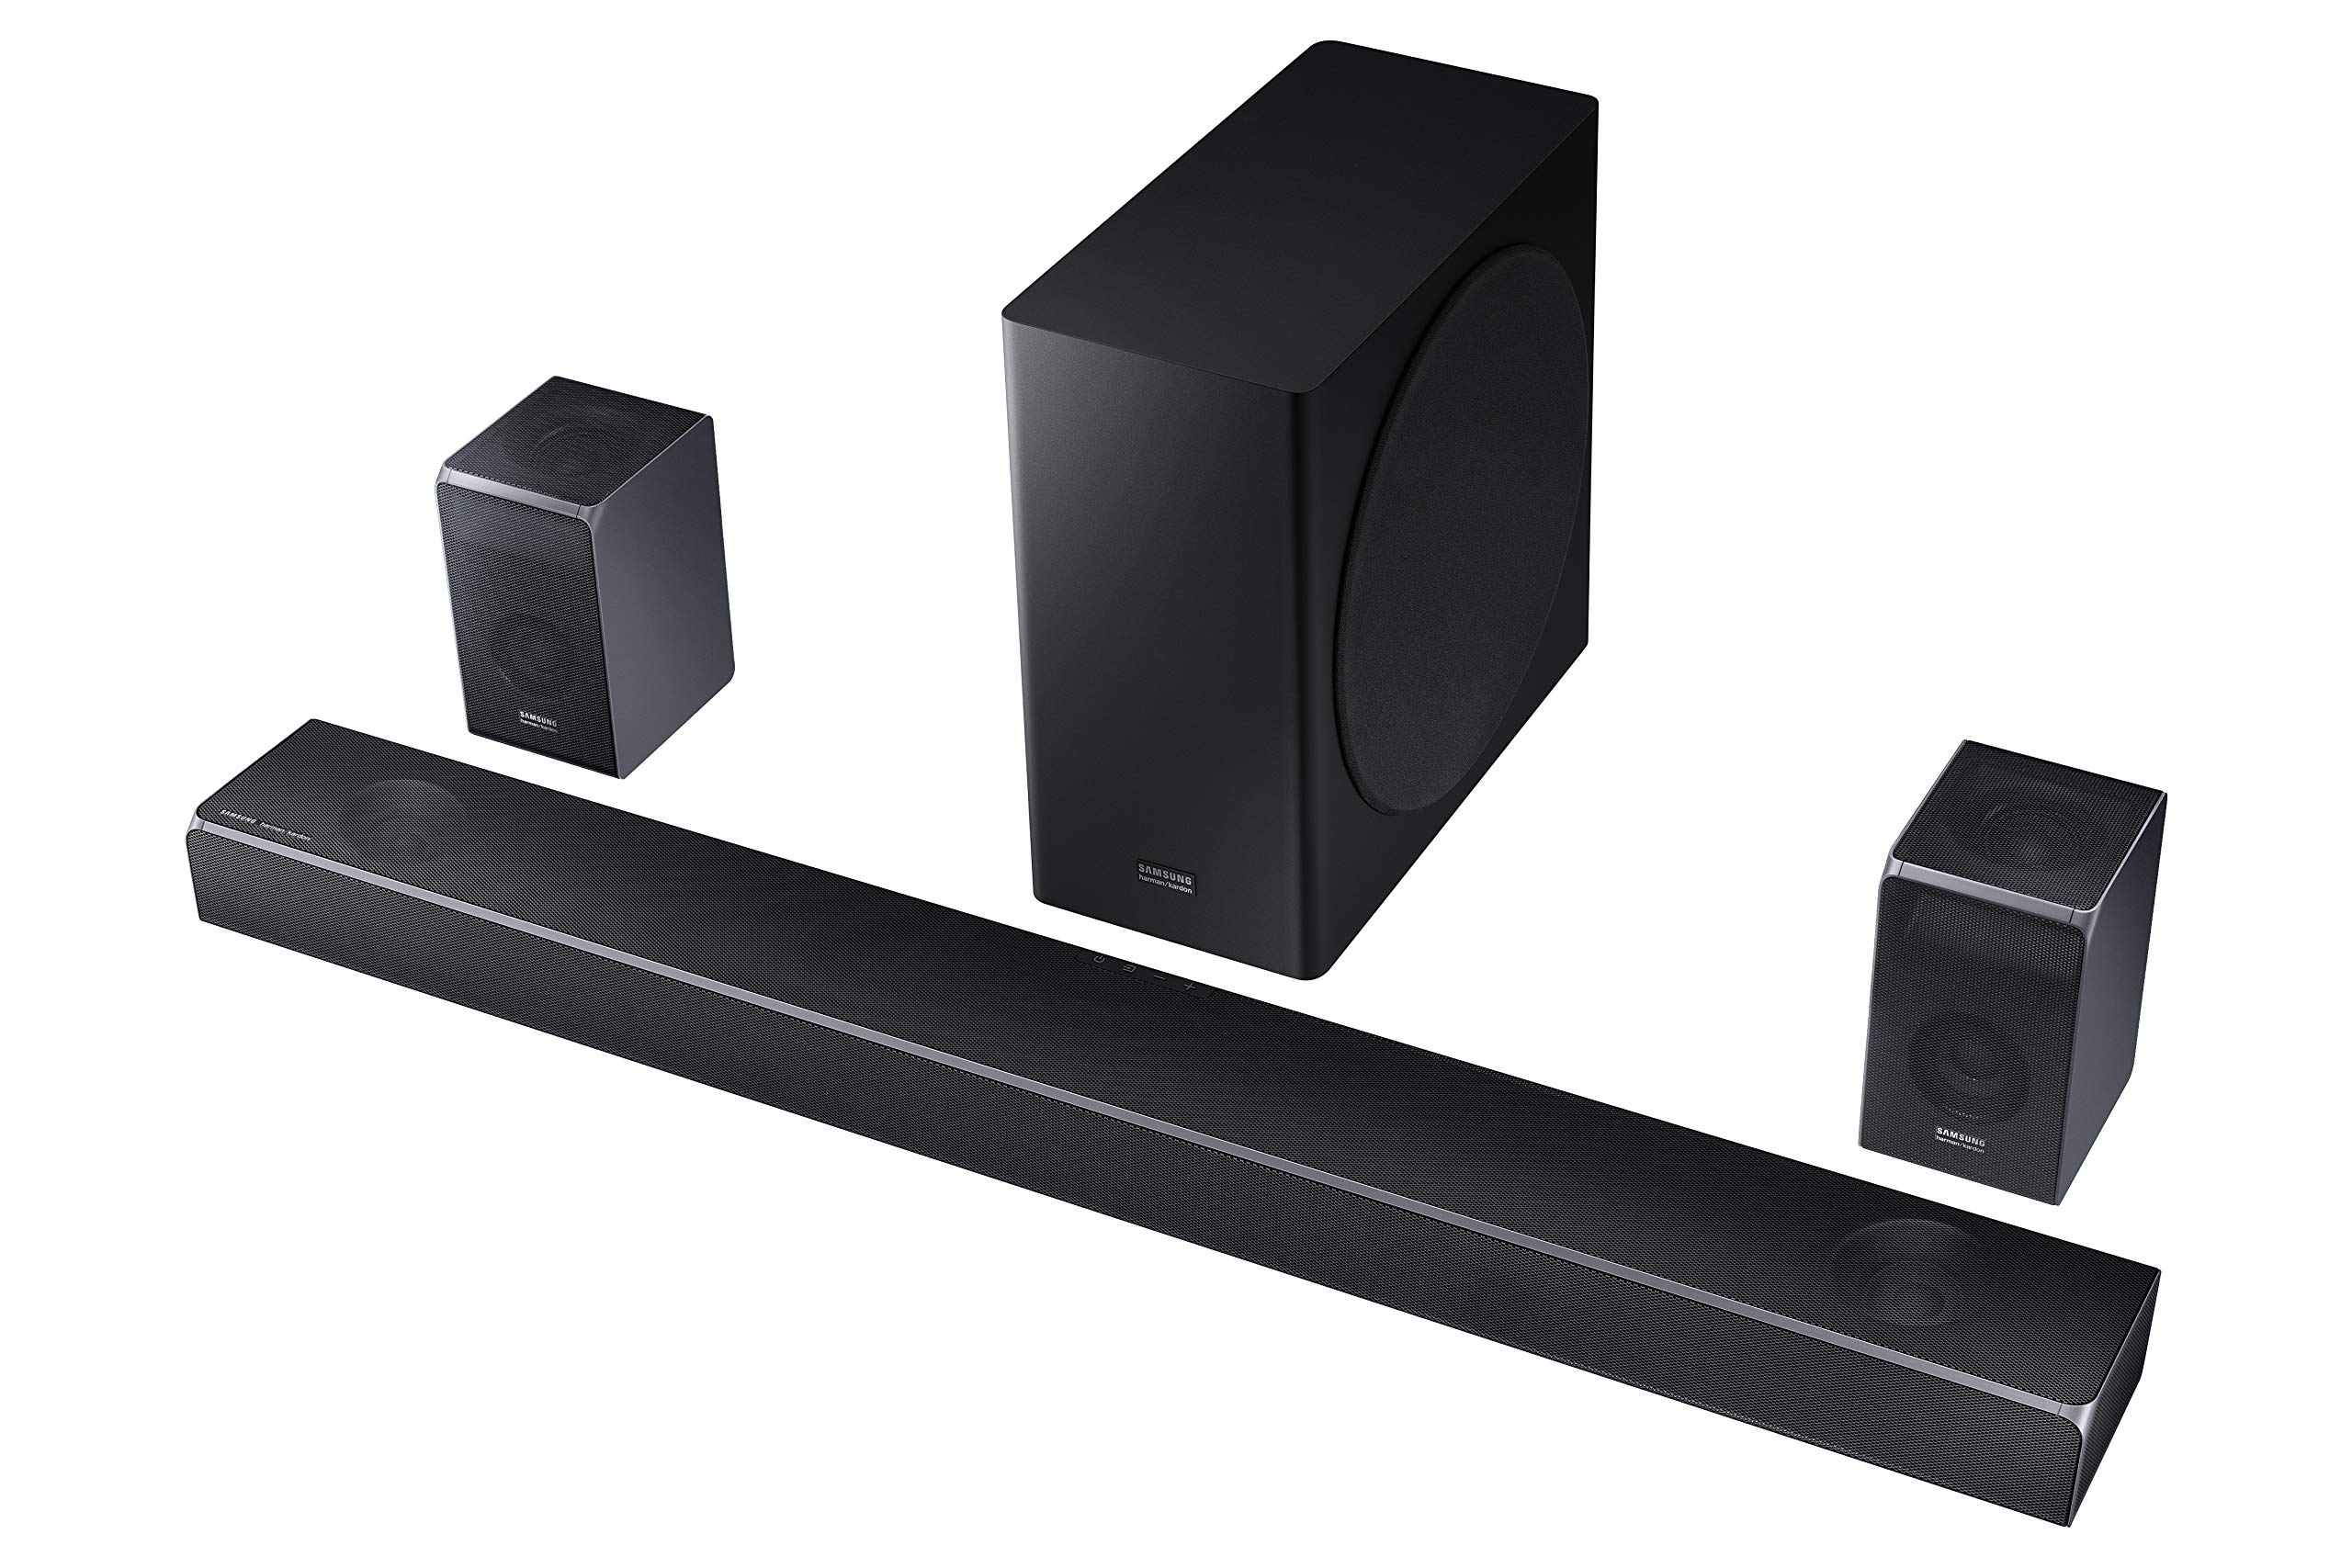 Samsung Harman Kardon 7.1.4 Dolby Atmos Soundbar HW-Q90R with Wireless Subwoofer and Rear Speaker Kit, Adaptive Sound, Game Mode, 4K Pass-Through with HDR, Bluetooth & Alexa Compatible (HW-Q90R/ZA)